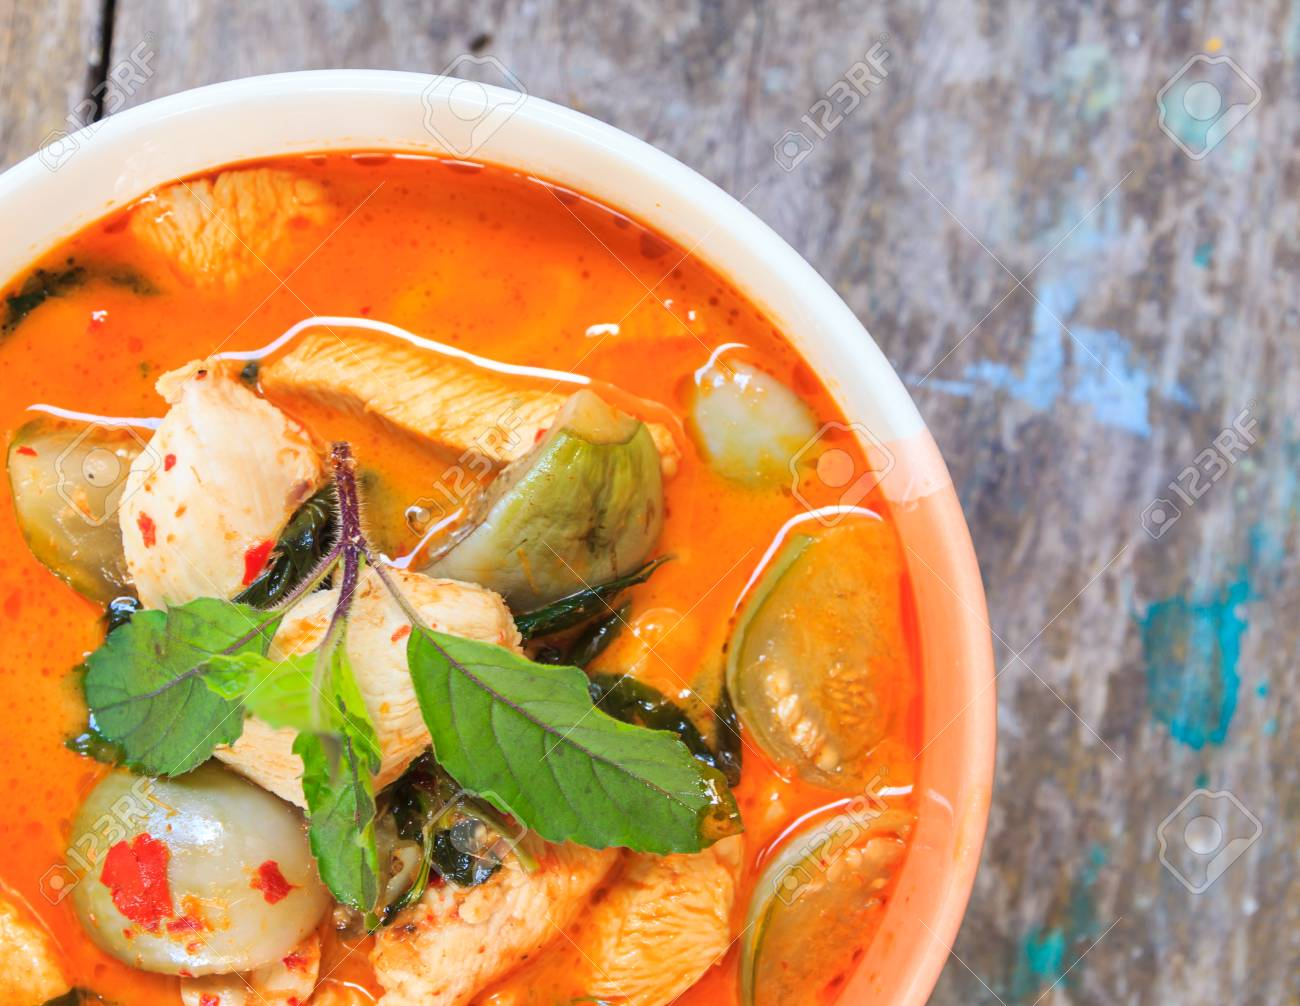 01379c0b Chicken Red Curry, Delicious Thai Cuisine Stock Photo, Picture And ...